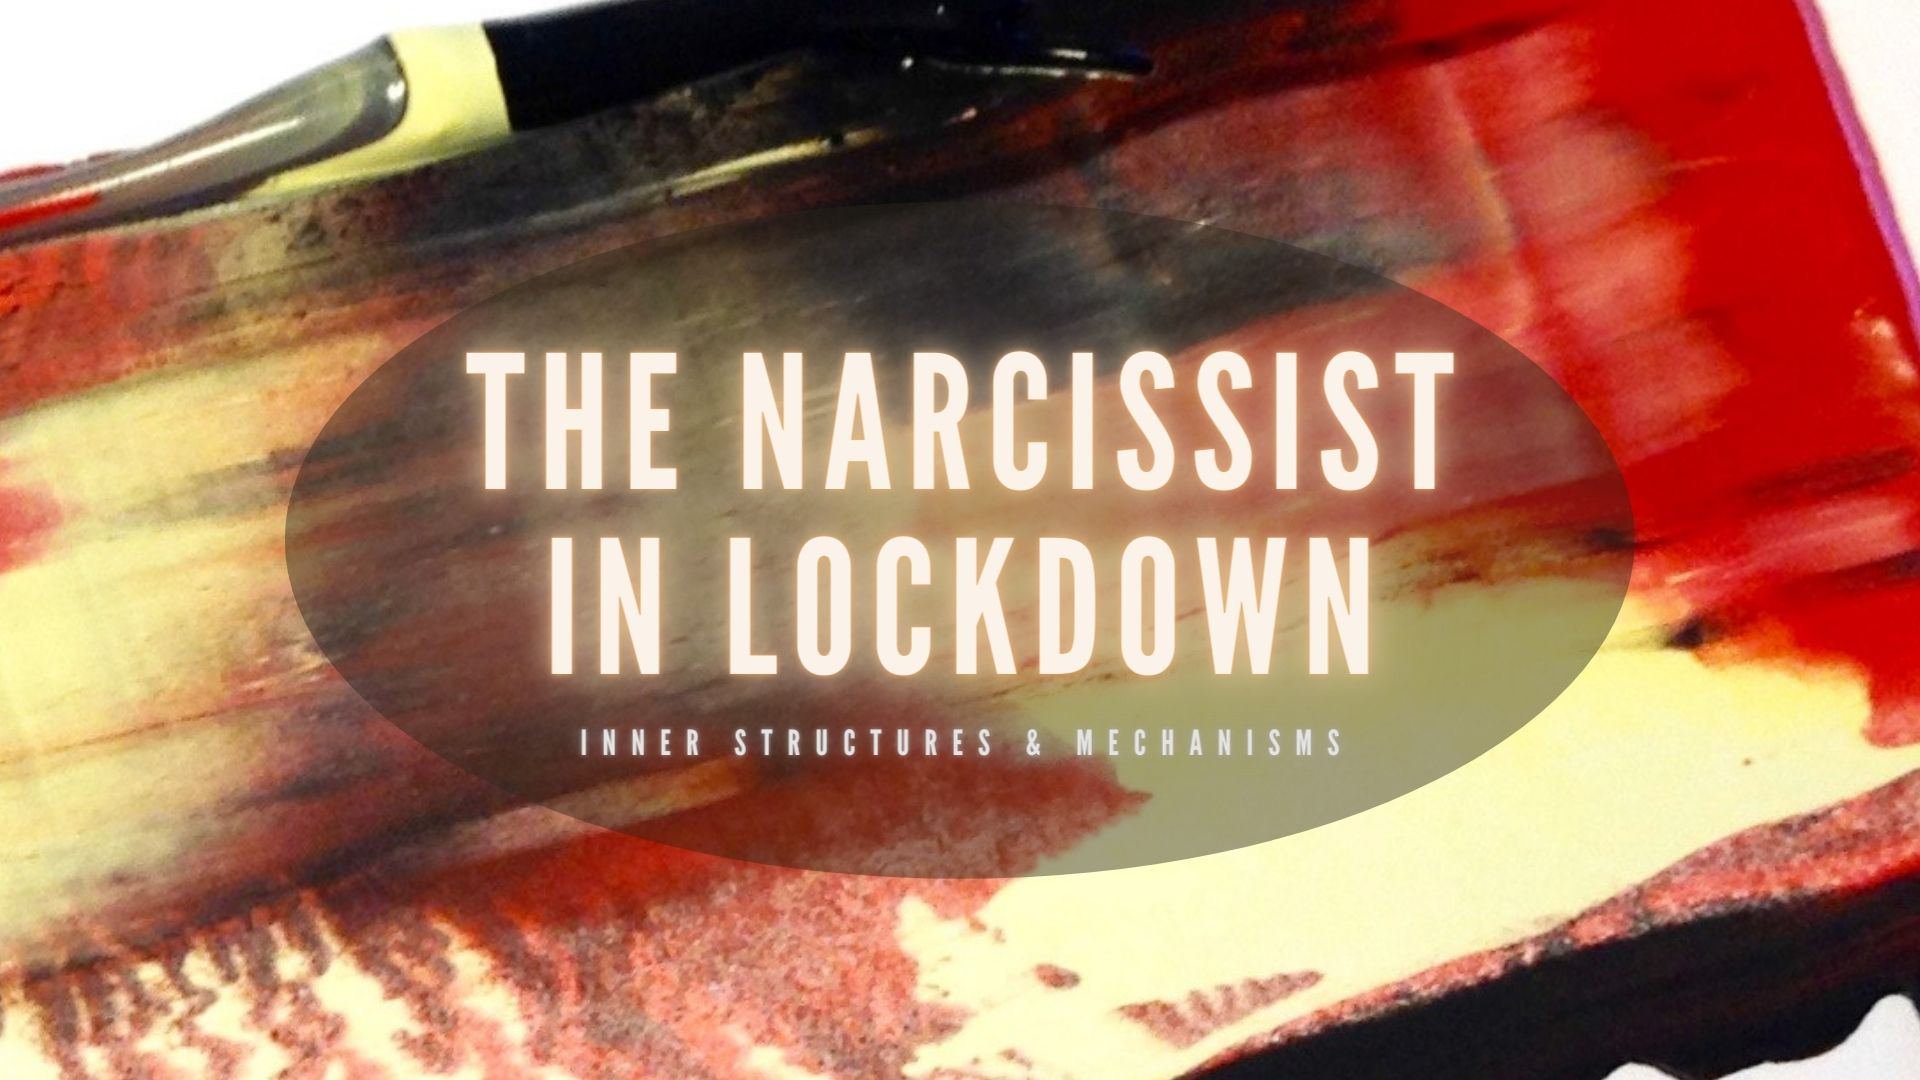 THE NARCISSIST IN LOCKDOWN | Narcissism